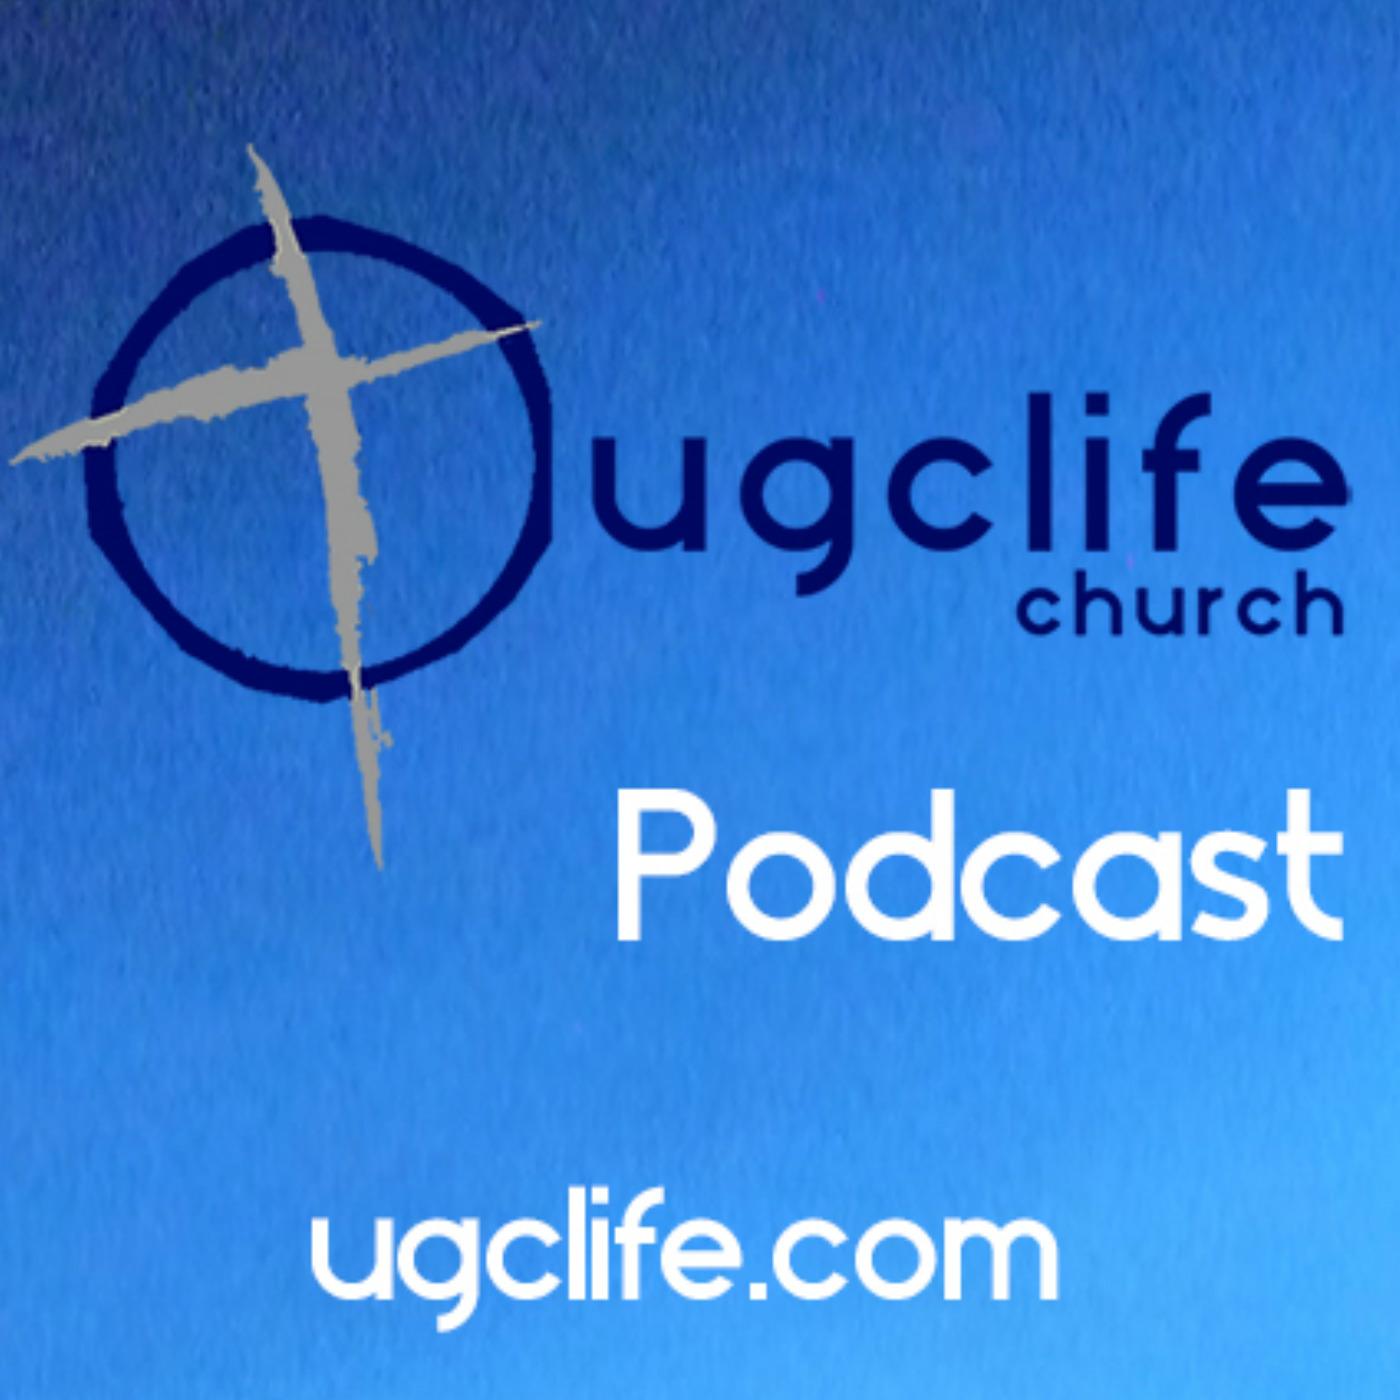 UGClife Podcast